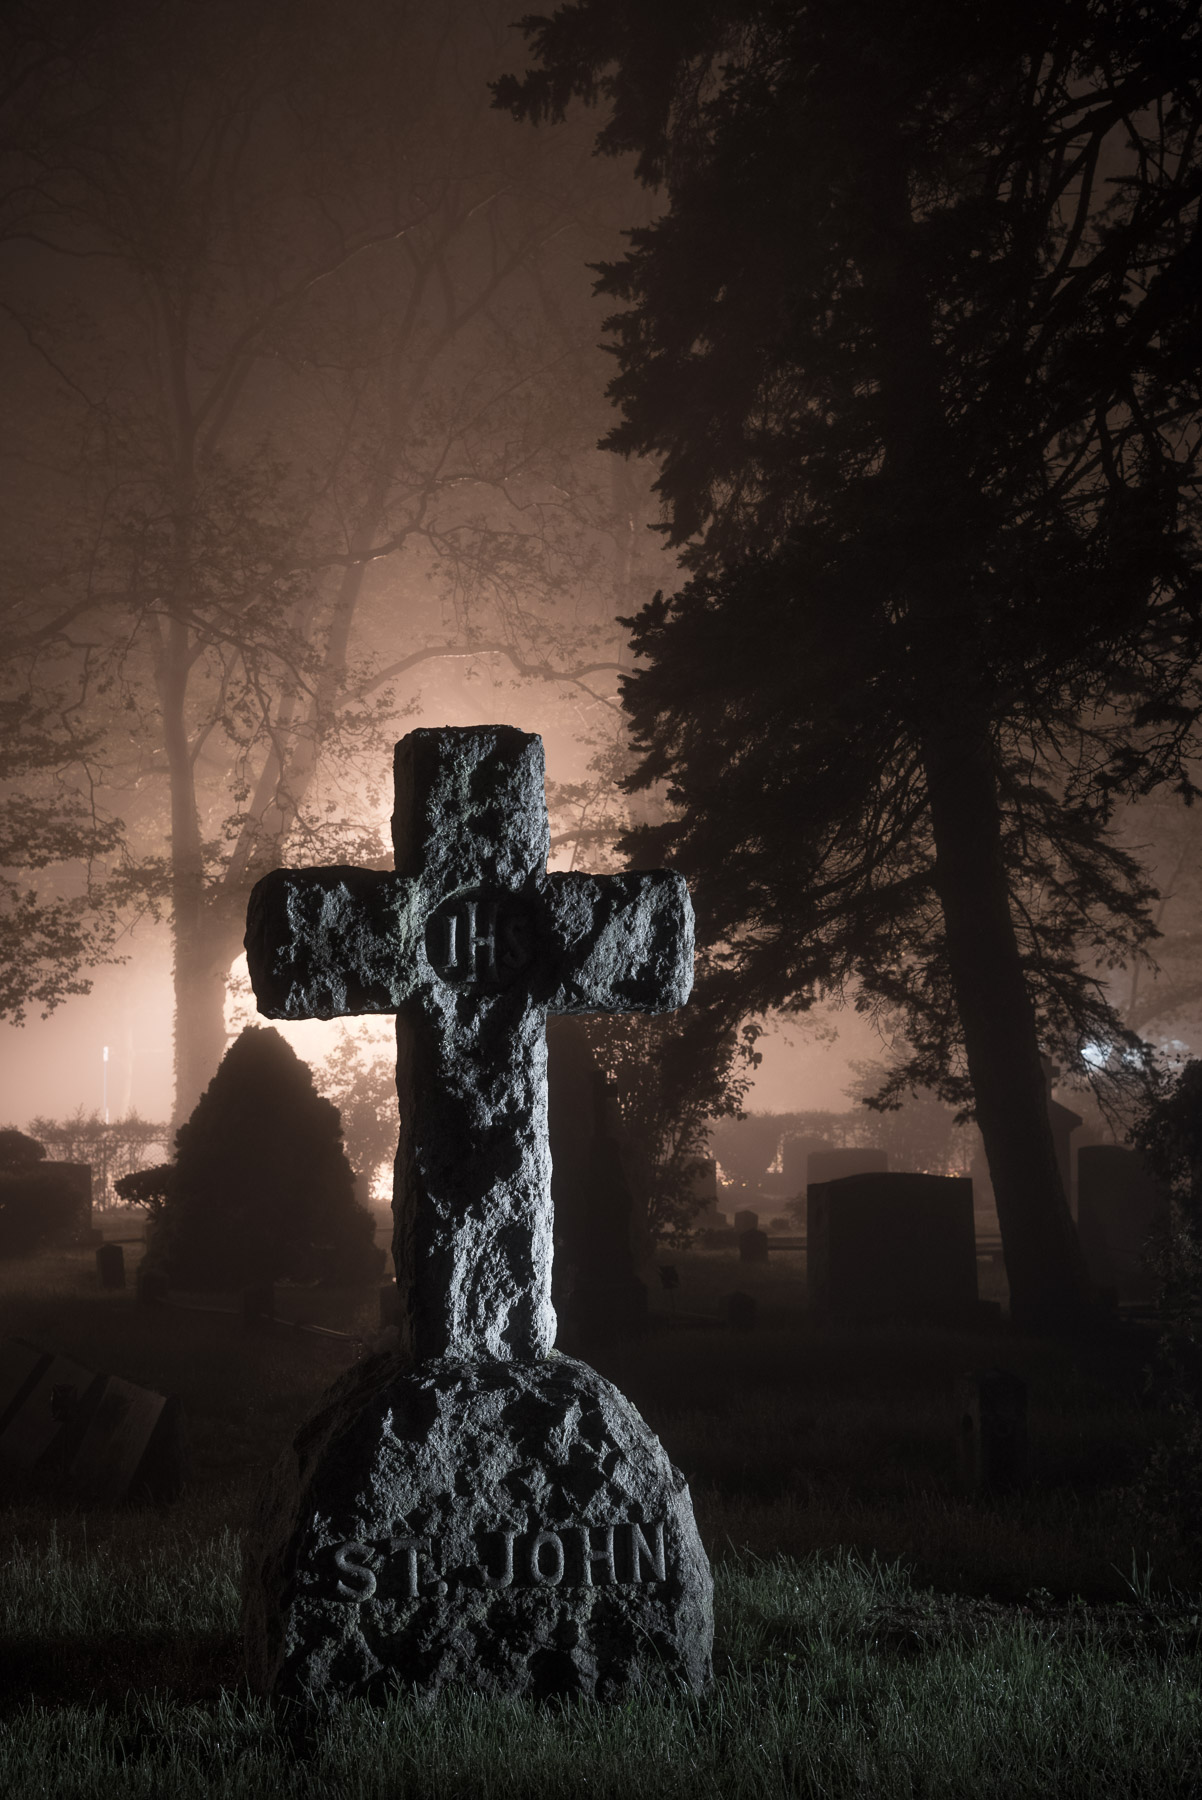 The warm-toned image is dominated by light from fog-diffused high pressure sodium vapor streetlights, with a key light on the cross from a Coast HP5R flashlight to camera right. Note that the 90-degree sidelighting exaggerates the texture in the cross, creating strong contrast in an otherwise soft scene. Nikon D750, Nikon 24-120mm f/4 lens at 50mm. 10 seconds, f/5.6, ISO 1600.